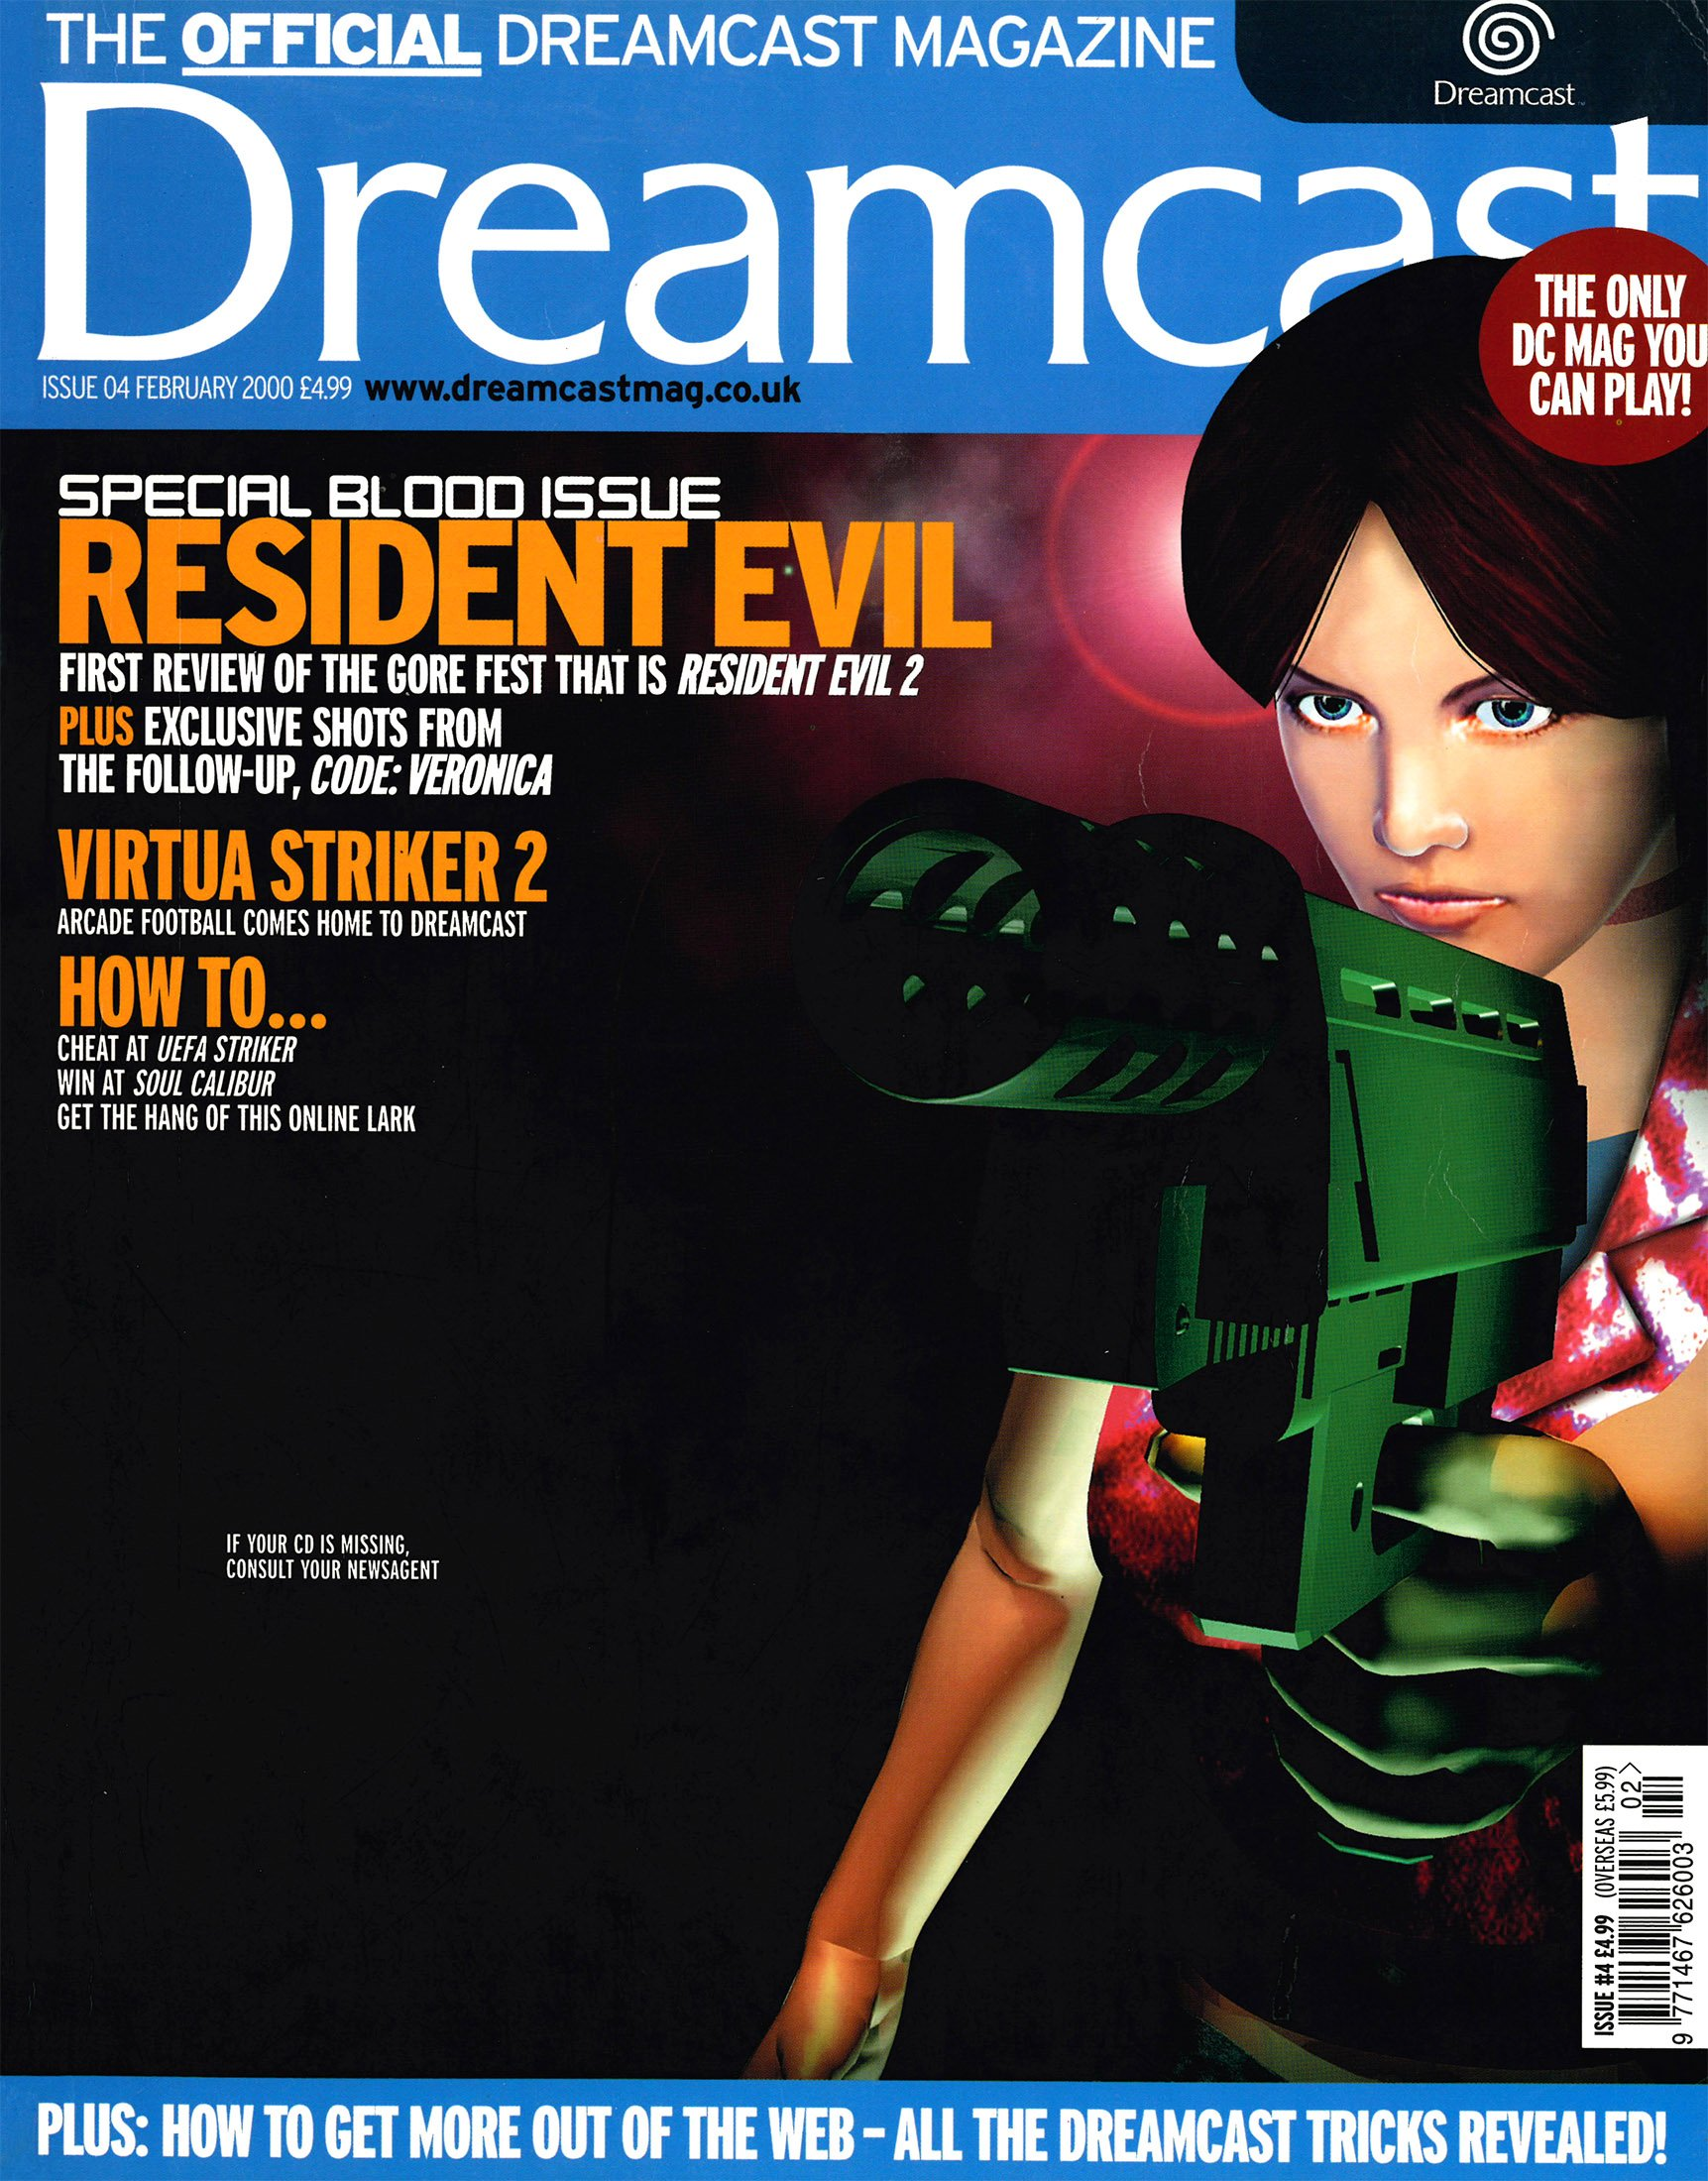 Official Dreamcast Magazine 04 (February 2000)